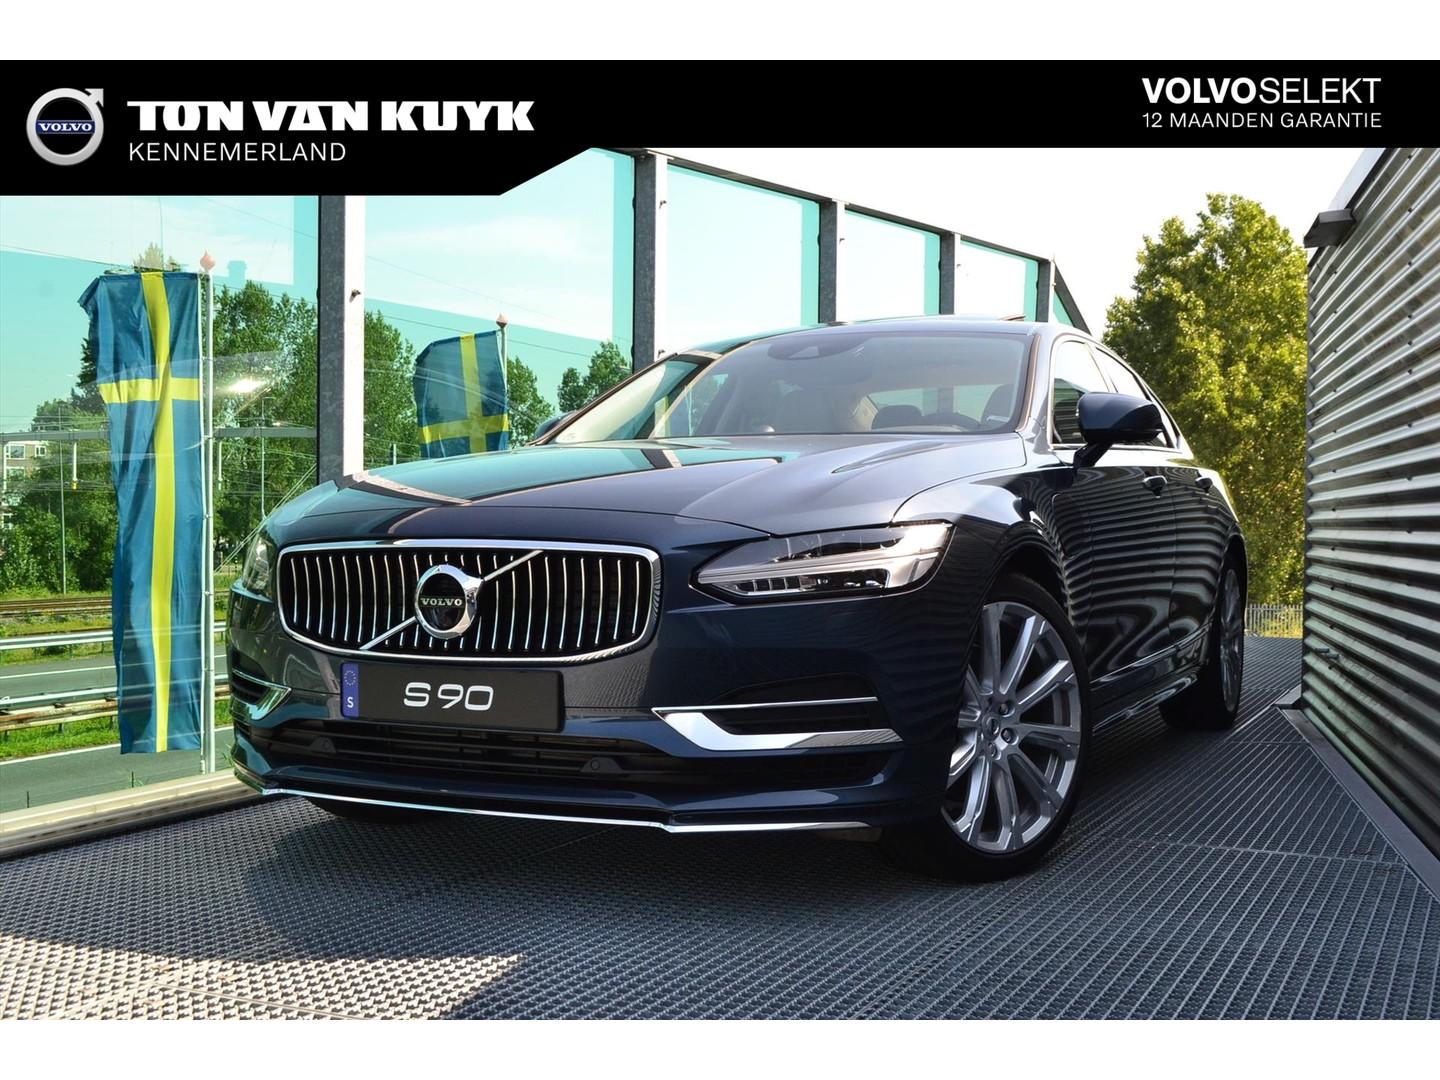 Volvo S90 T8 twin engine 407pk geartronic awd inscription / luxury line/